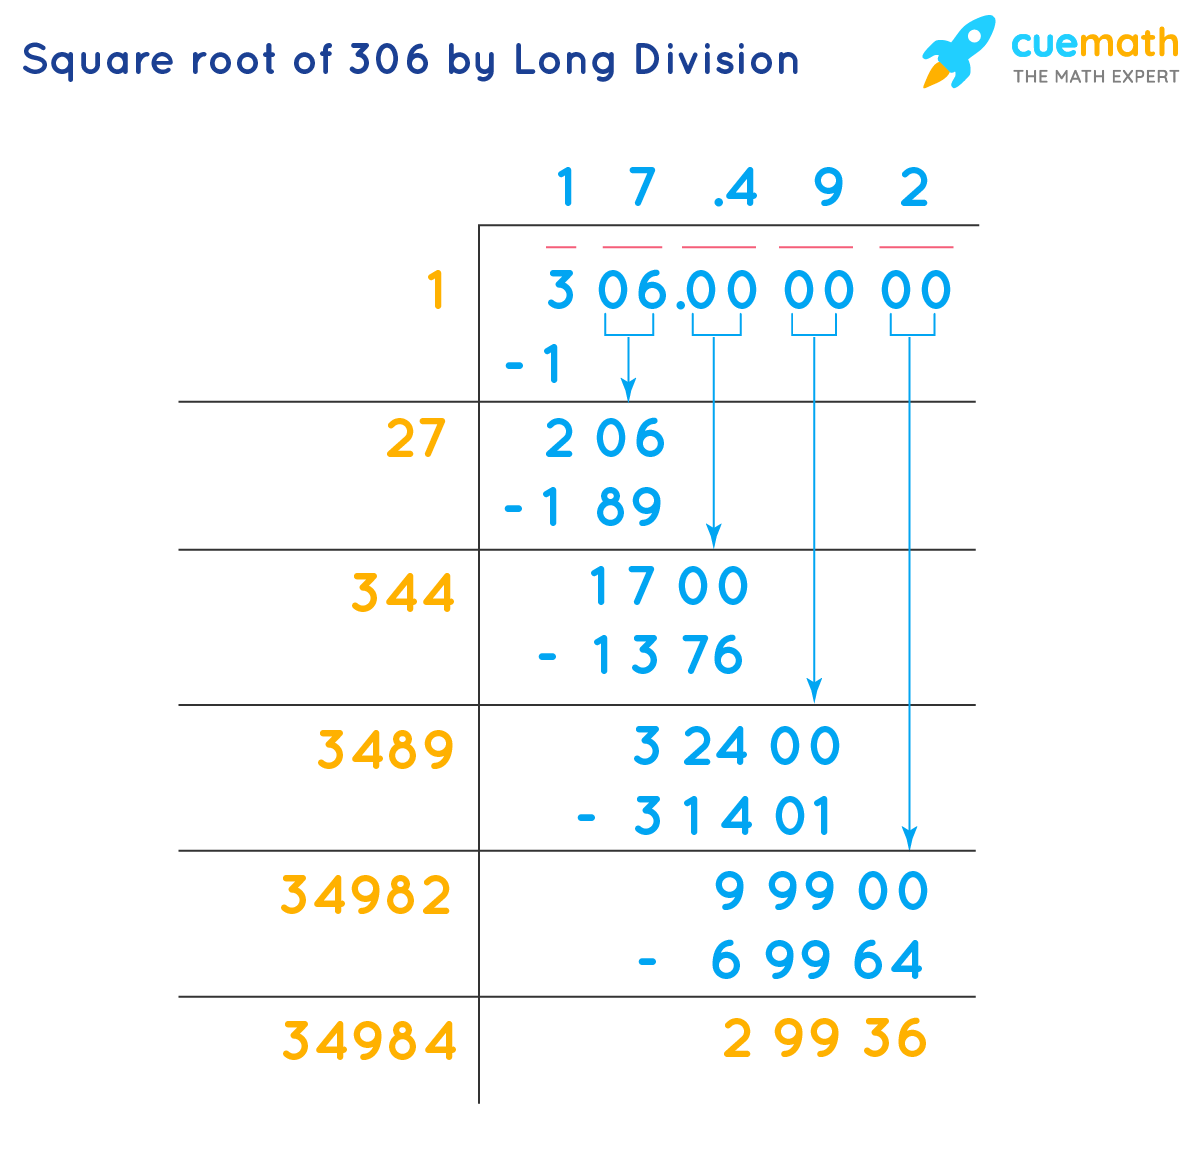 square root of 306 by long division